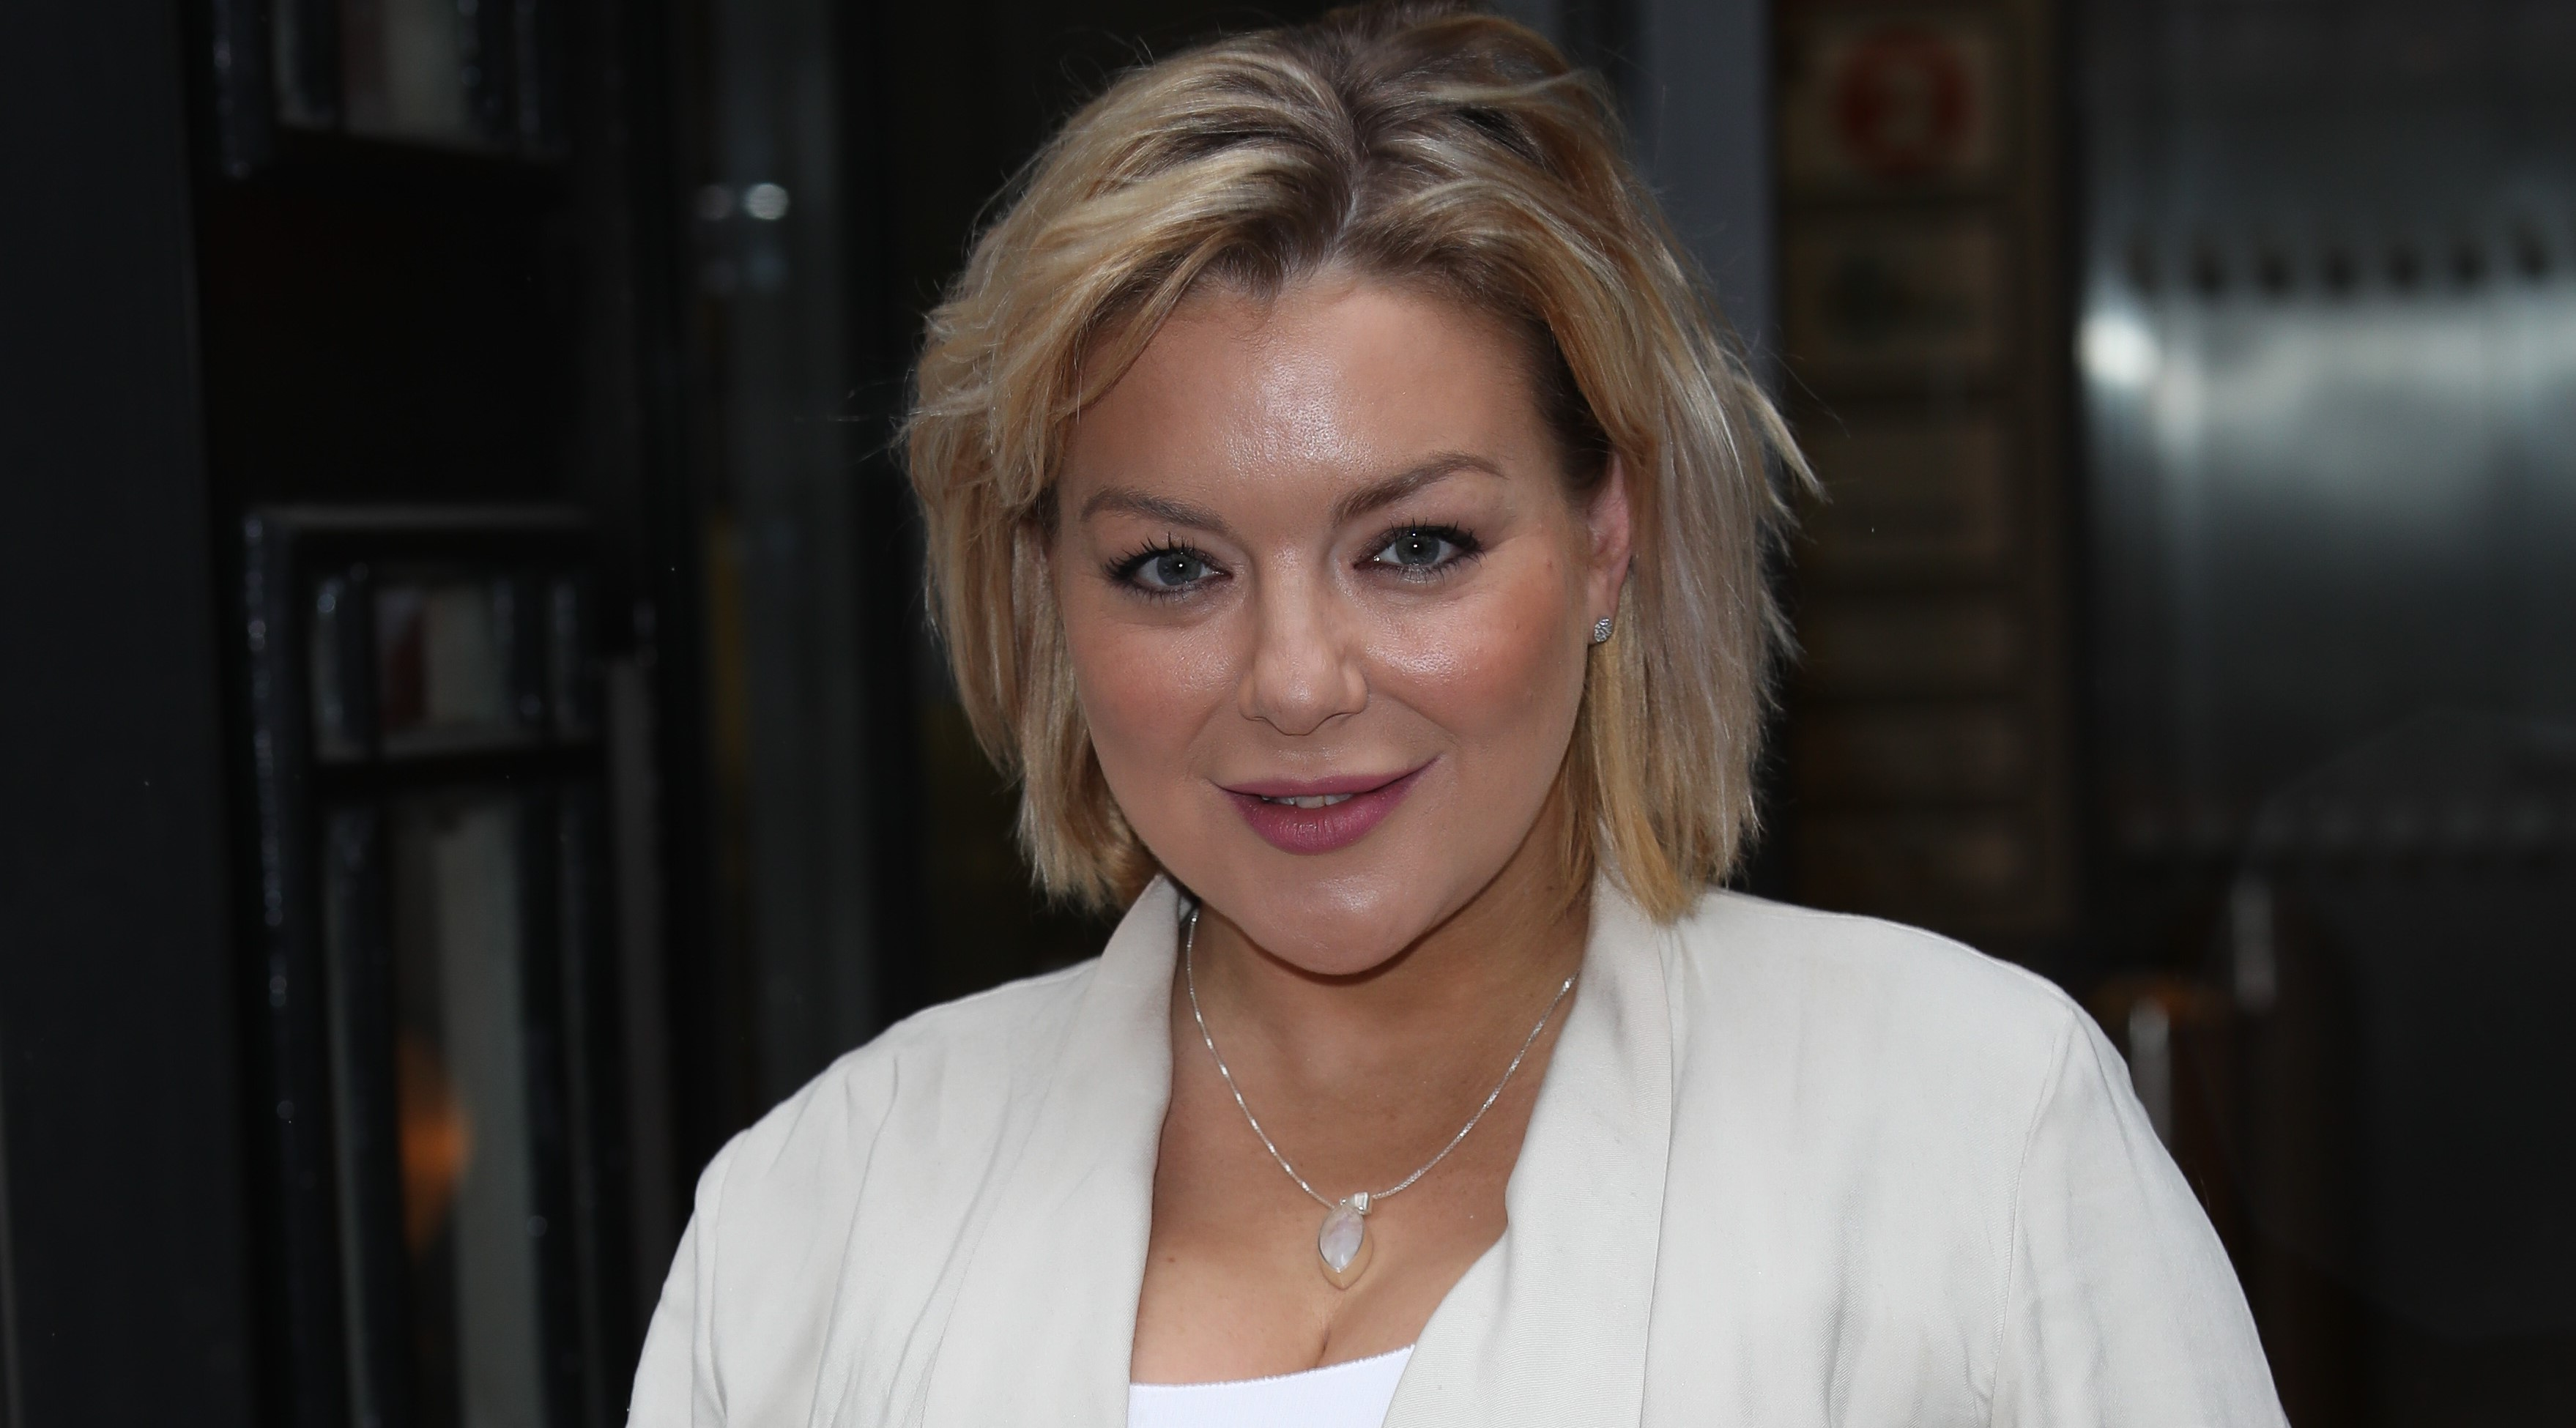 Sheridan Smith is forced to pull out of gig due to illness